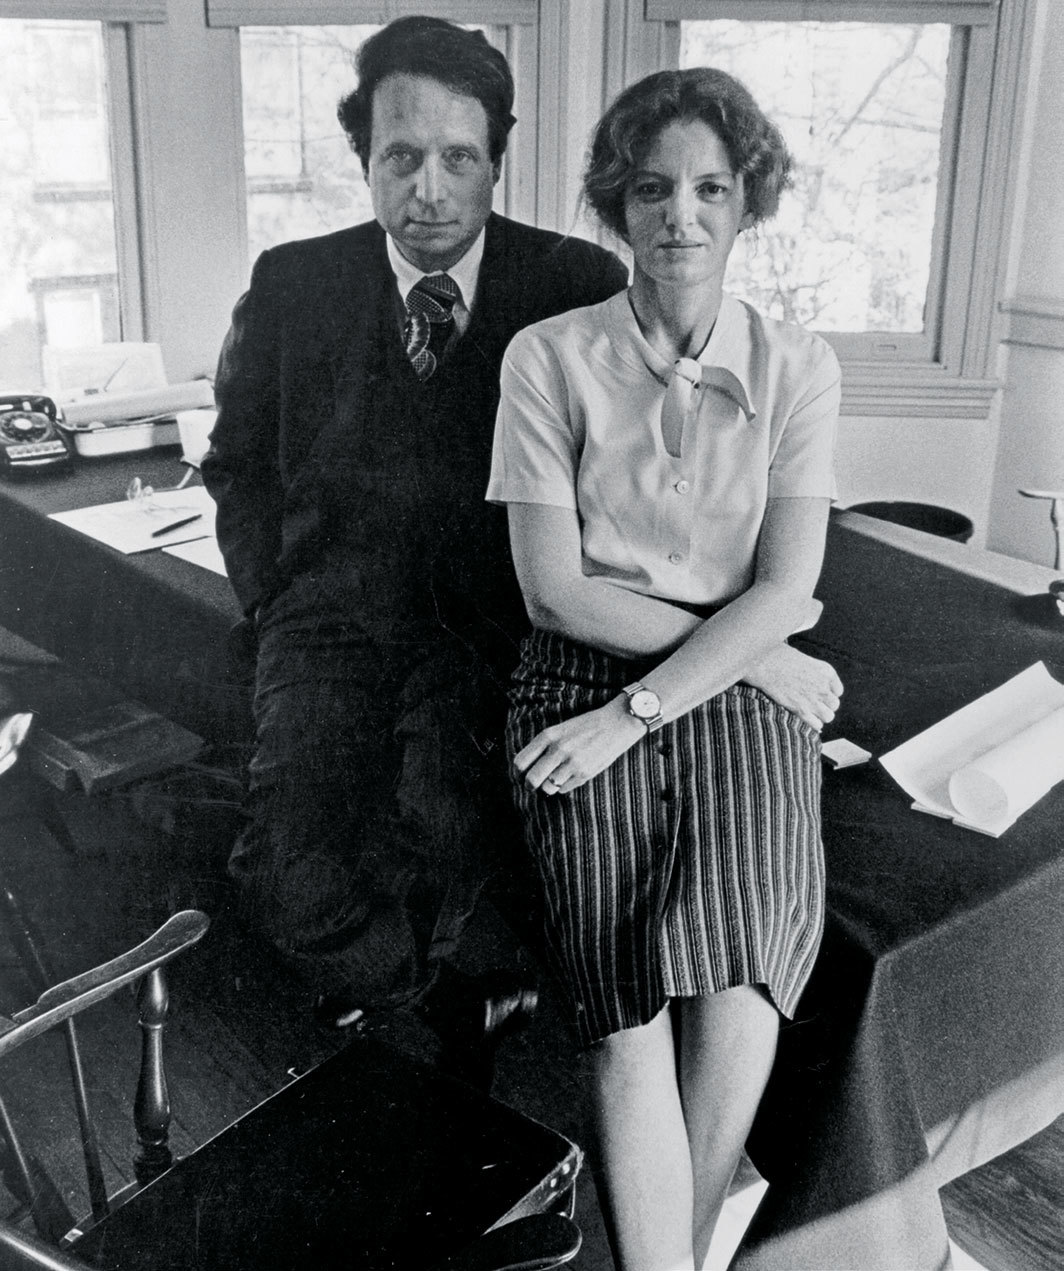 Robert Venturi and Denise Scott Brown in their first office, Pine Street, Philadelphia, ca. 1970s. Photo: George Pohl.